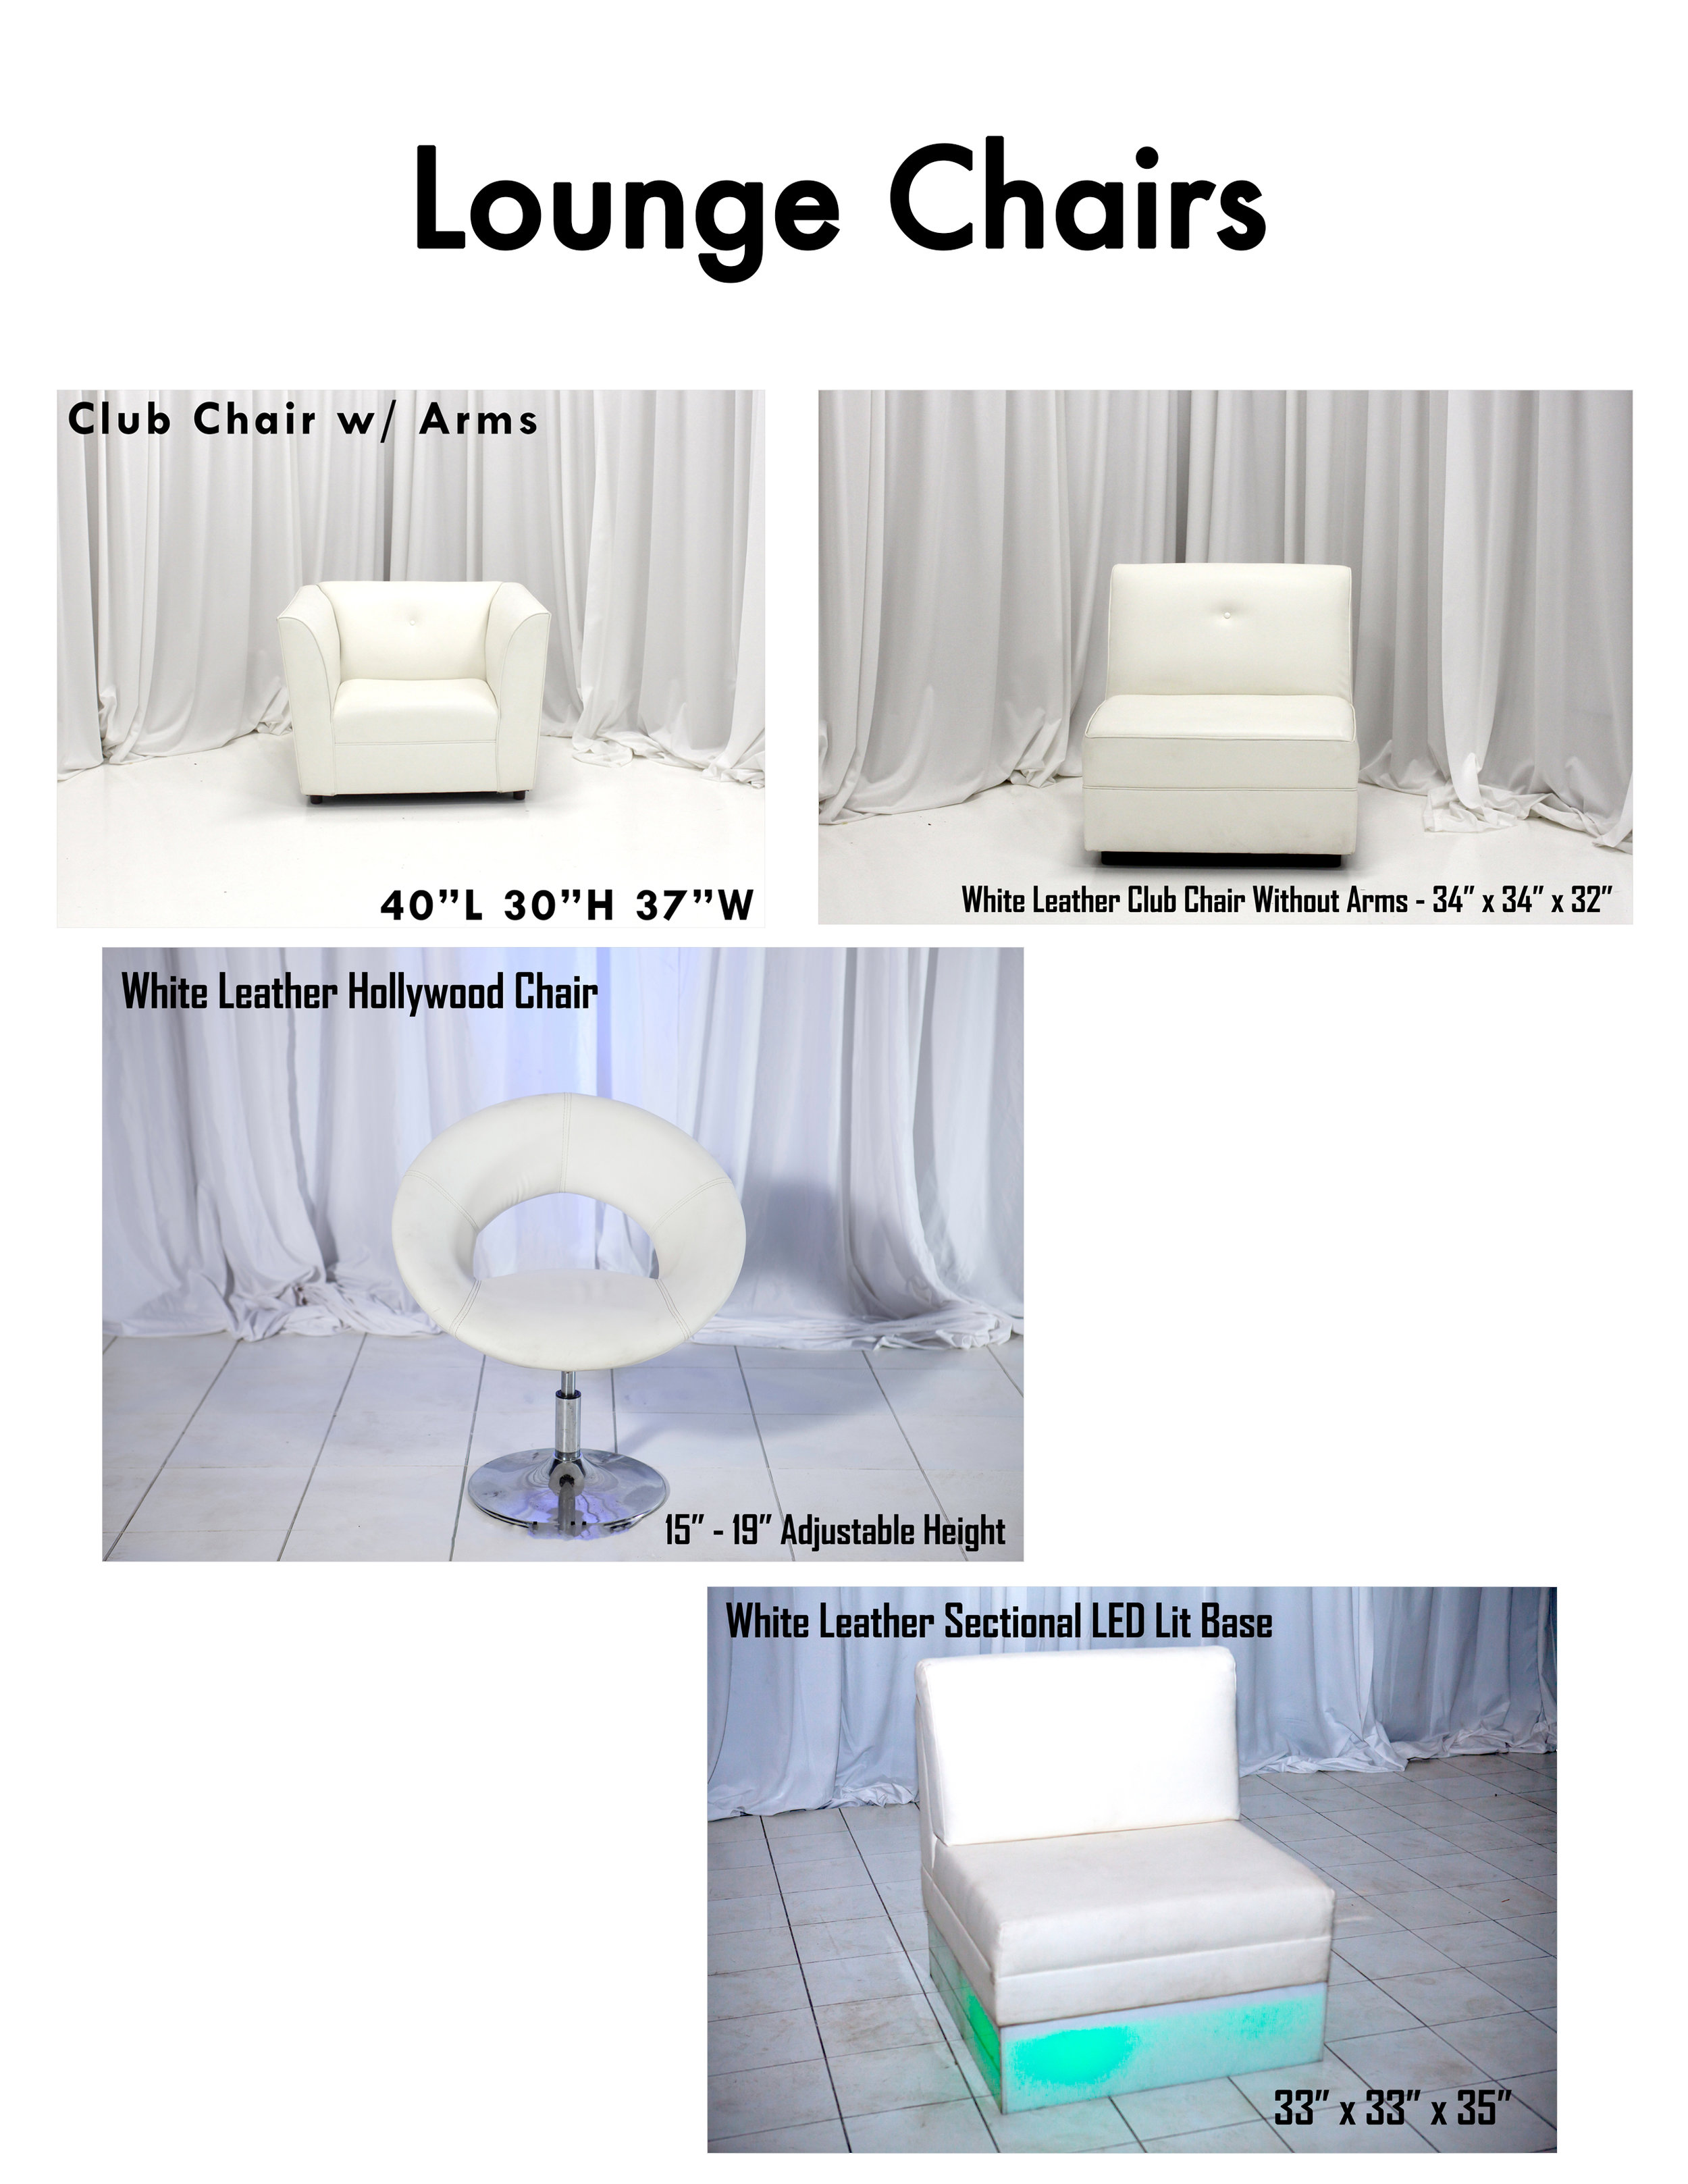 049-P48_Lounge Chairs.jpg